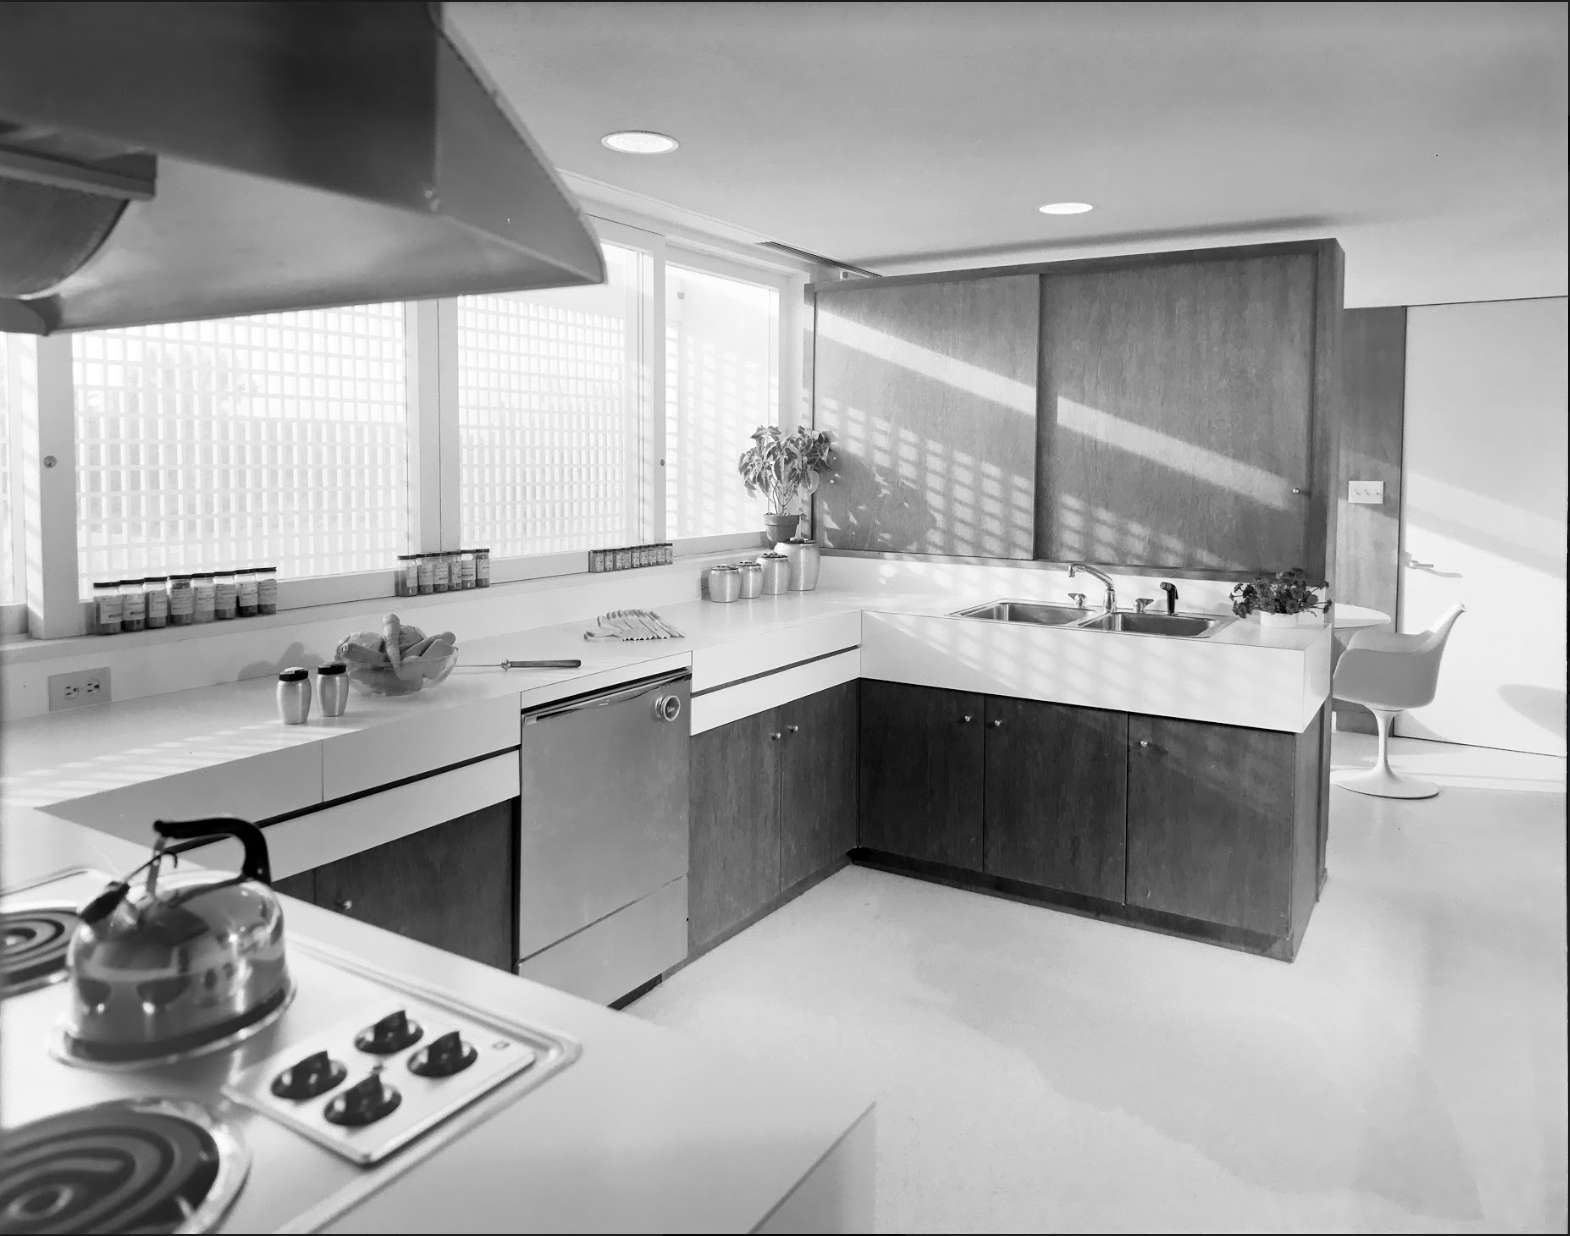 Milam Residence Kitchen, 25 January 1962